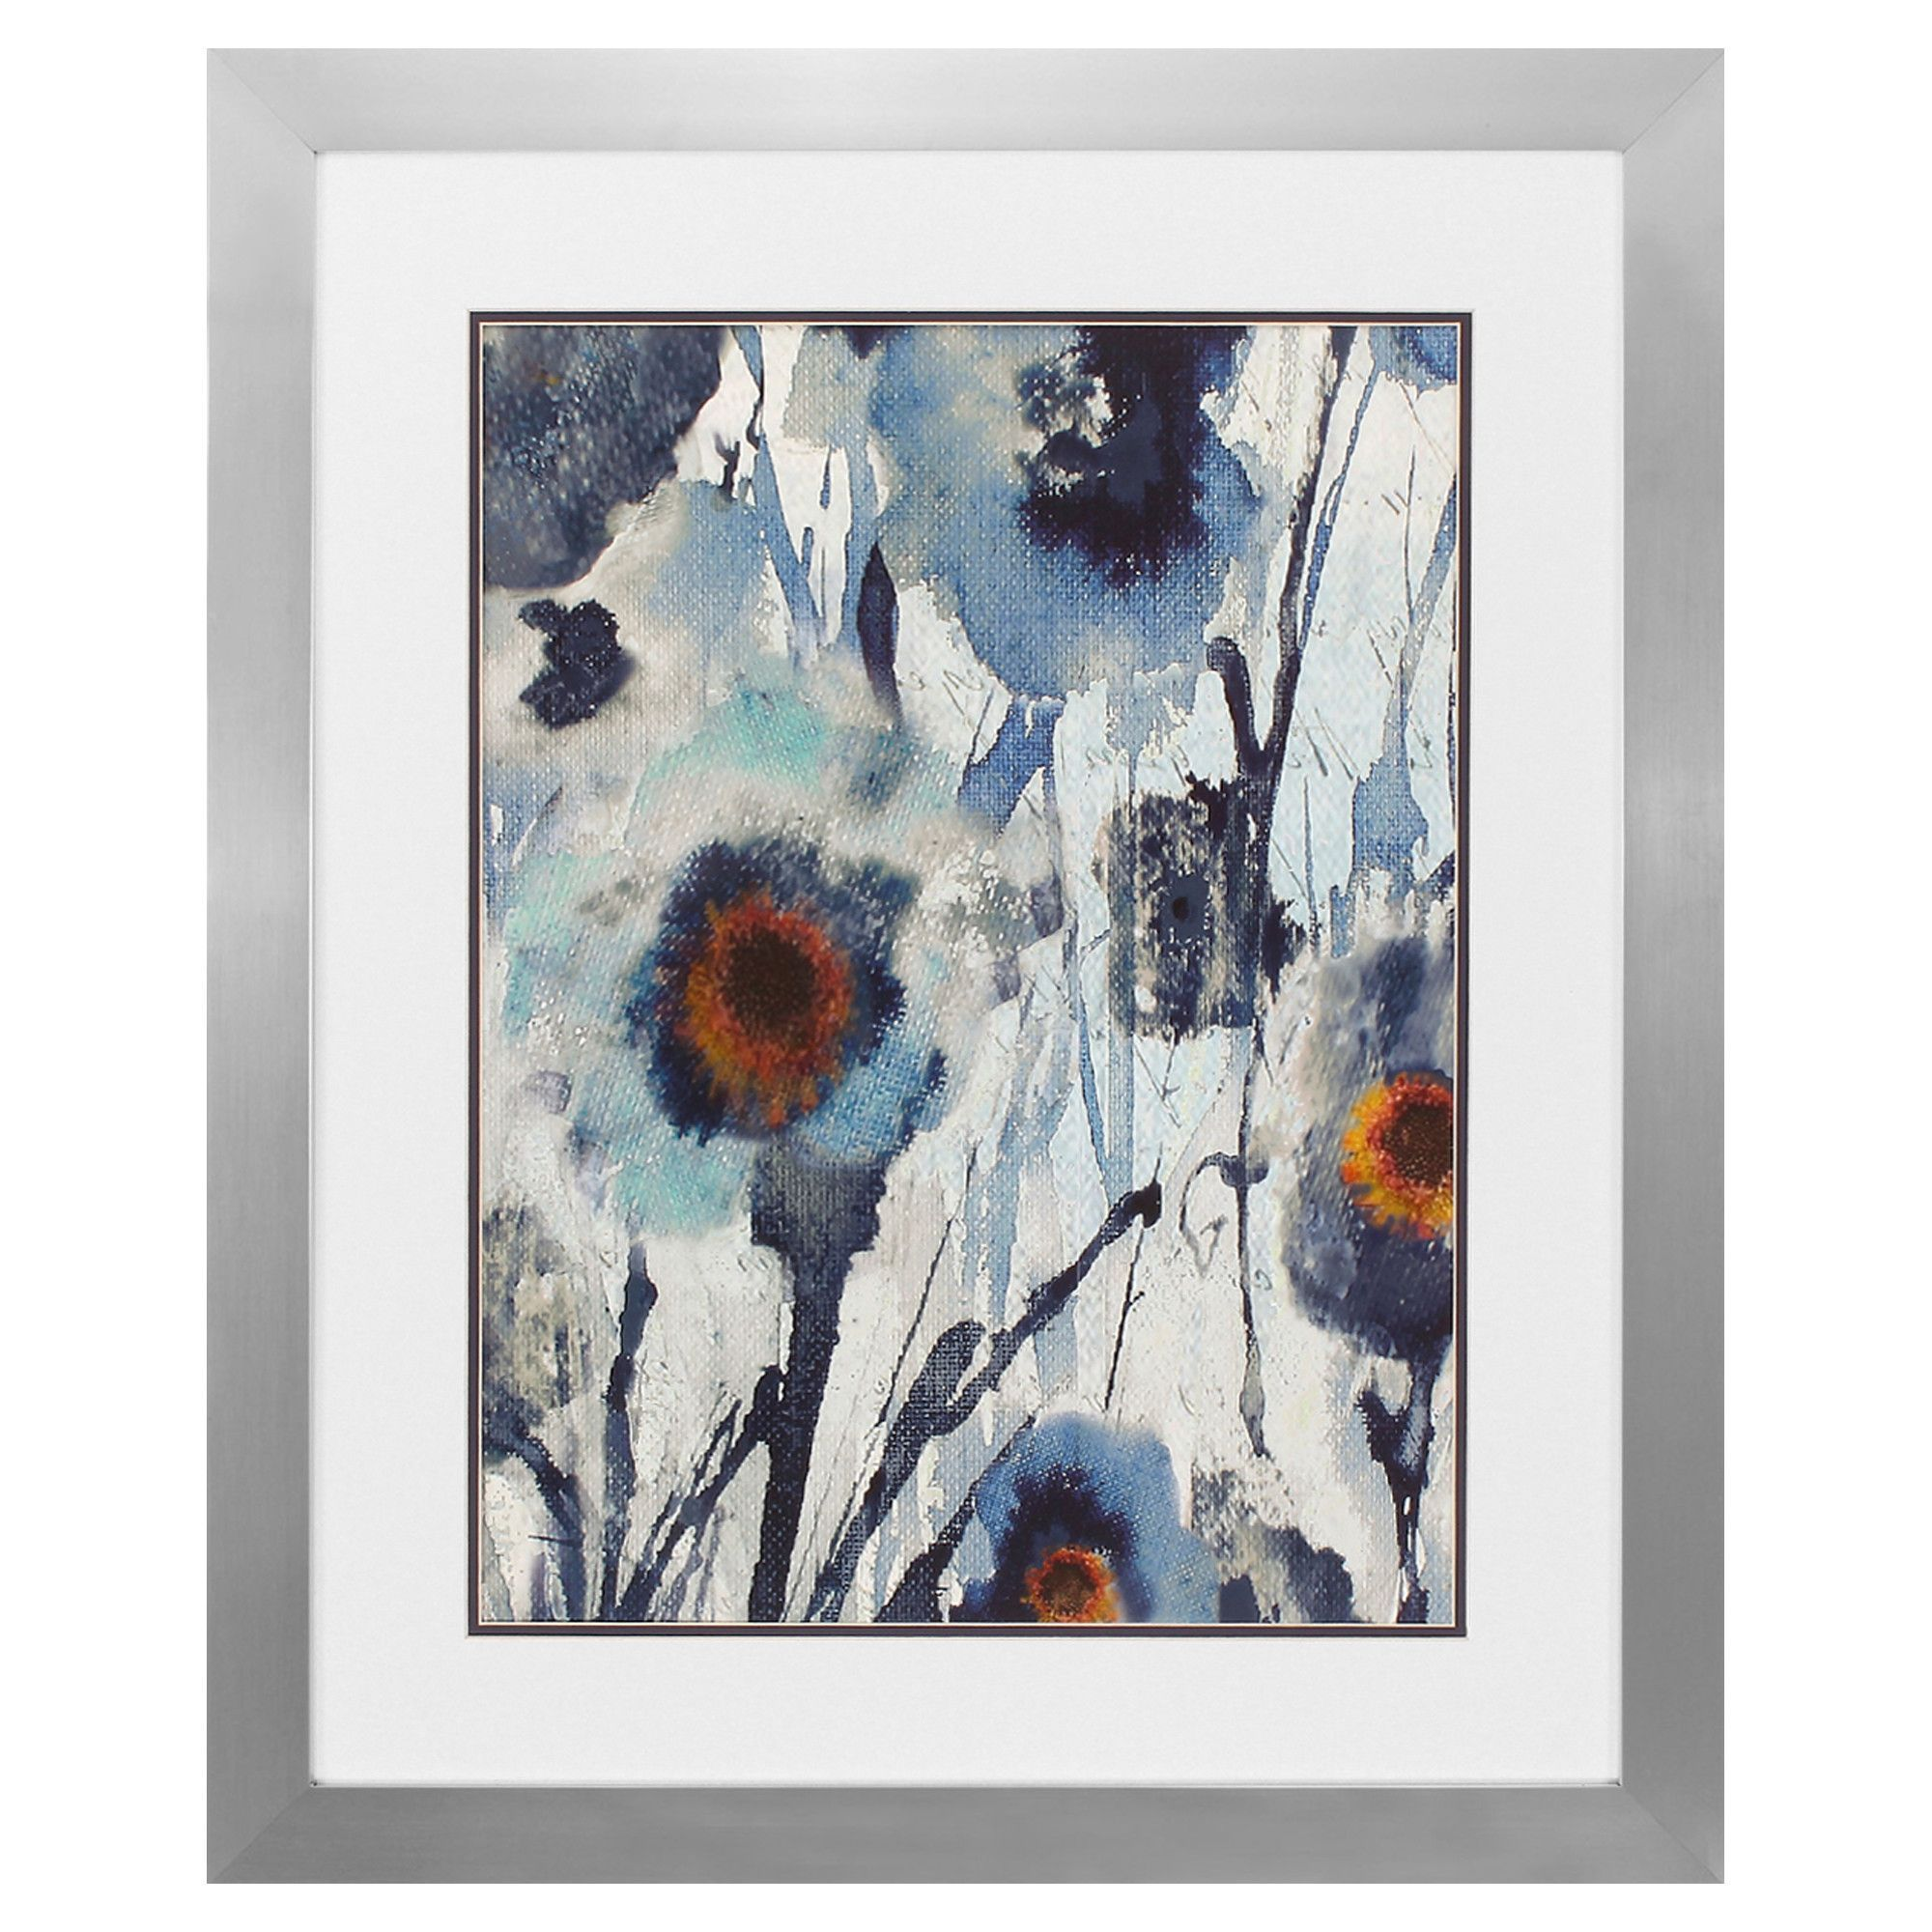 Forget Me Not II Framed Painting Print | Products | Pinterest ...